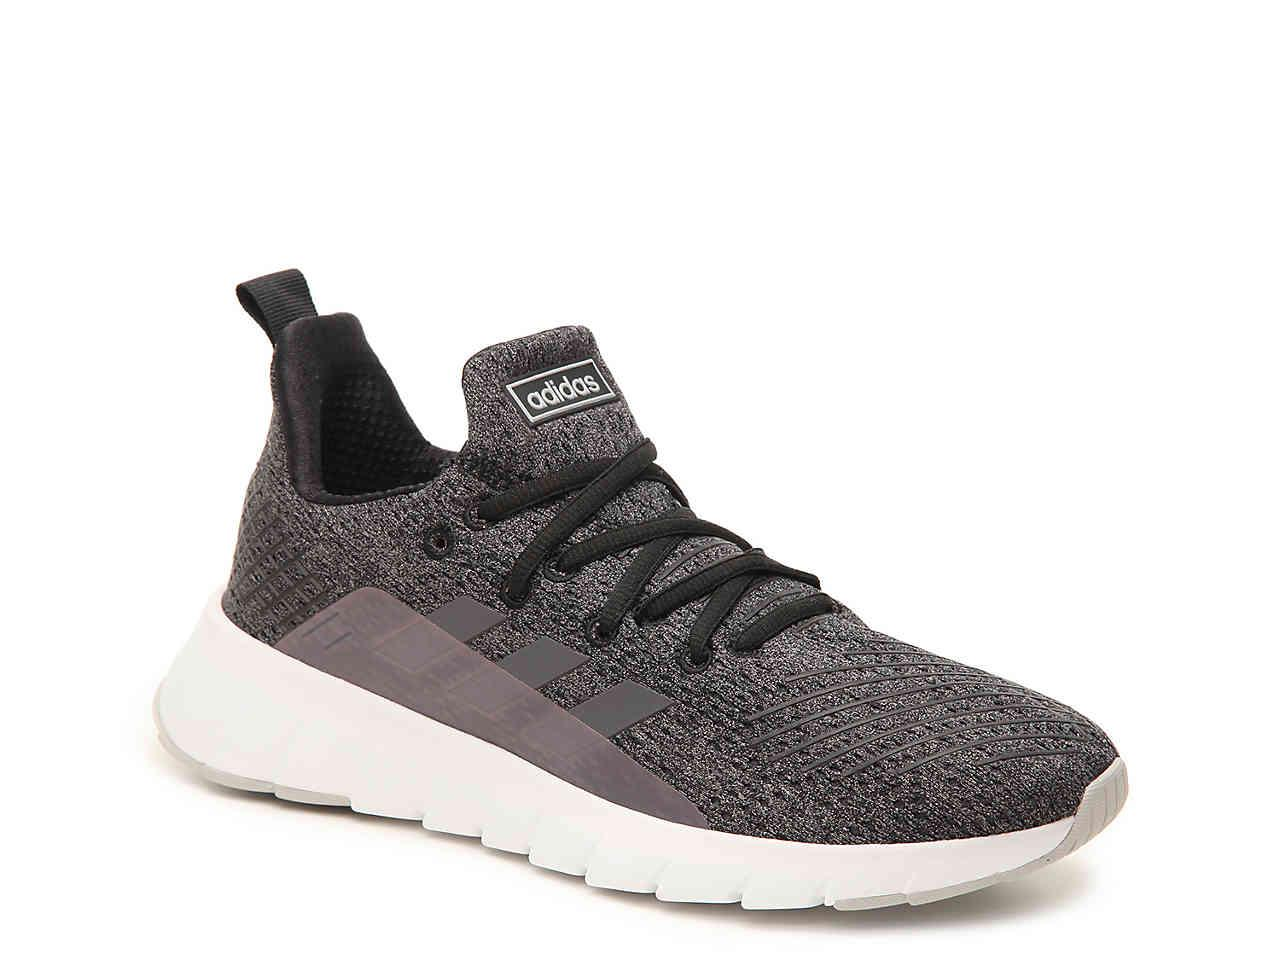 Lyst - adidas Asweego Running Shoe in Black 0a5c7f924